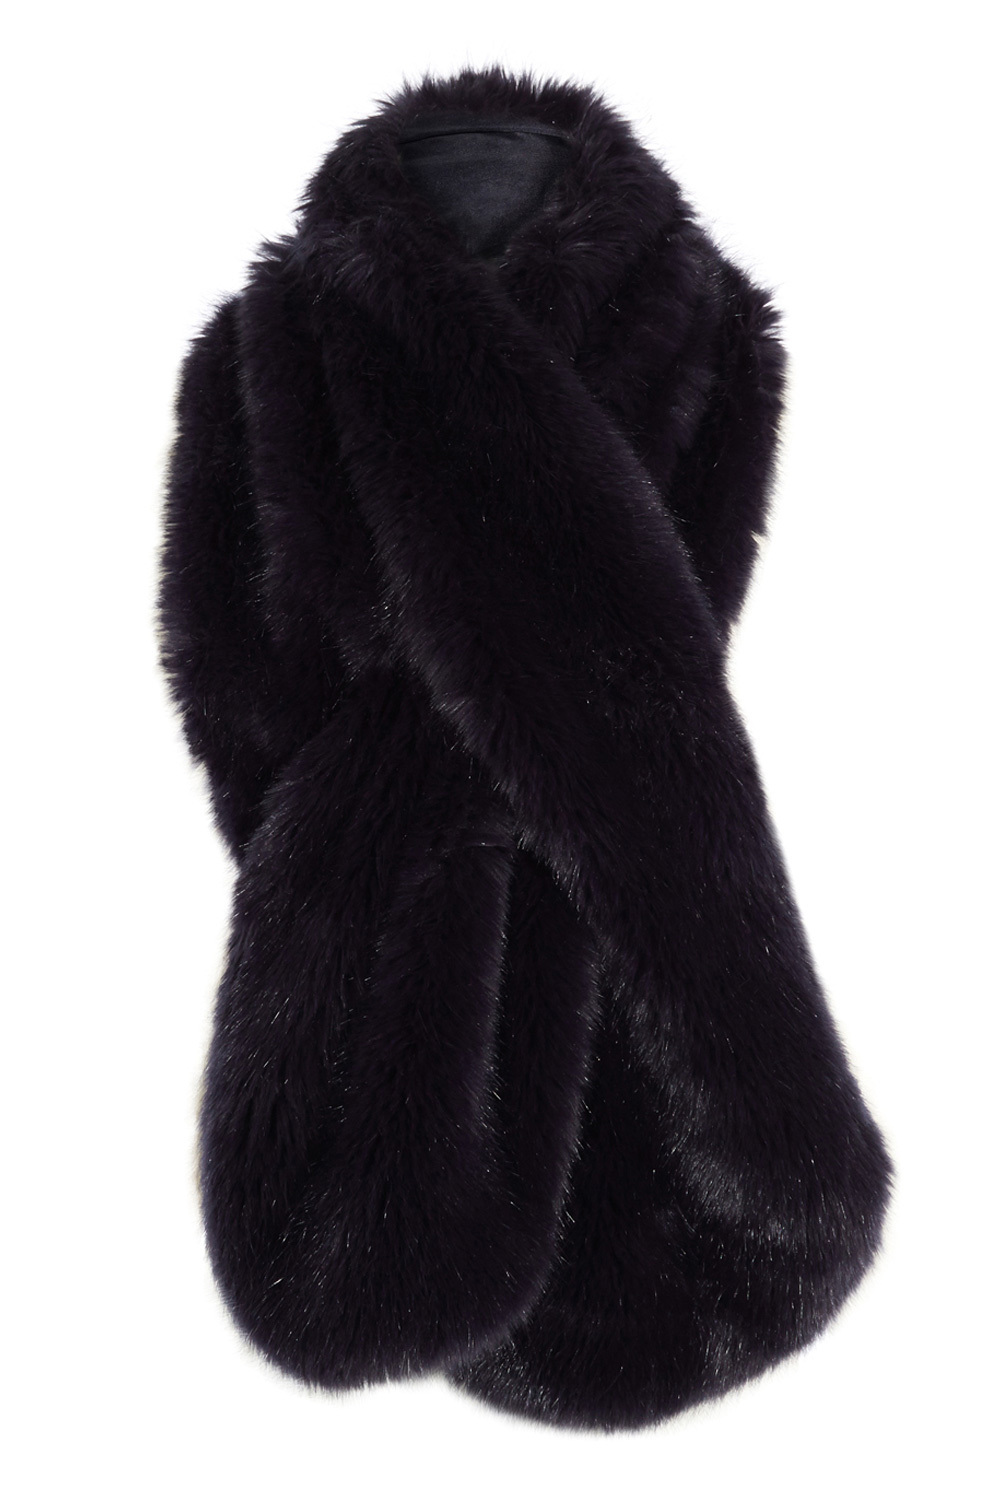 Luella Longline Fur Scarf - predominant colour: black; occasions: casual; type of pattern: standard; size: standard; material: fur; pattern: plain; style: stole; wardrobe: basic; season: a/w 2016